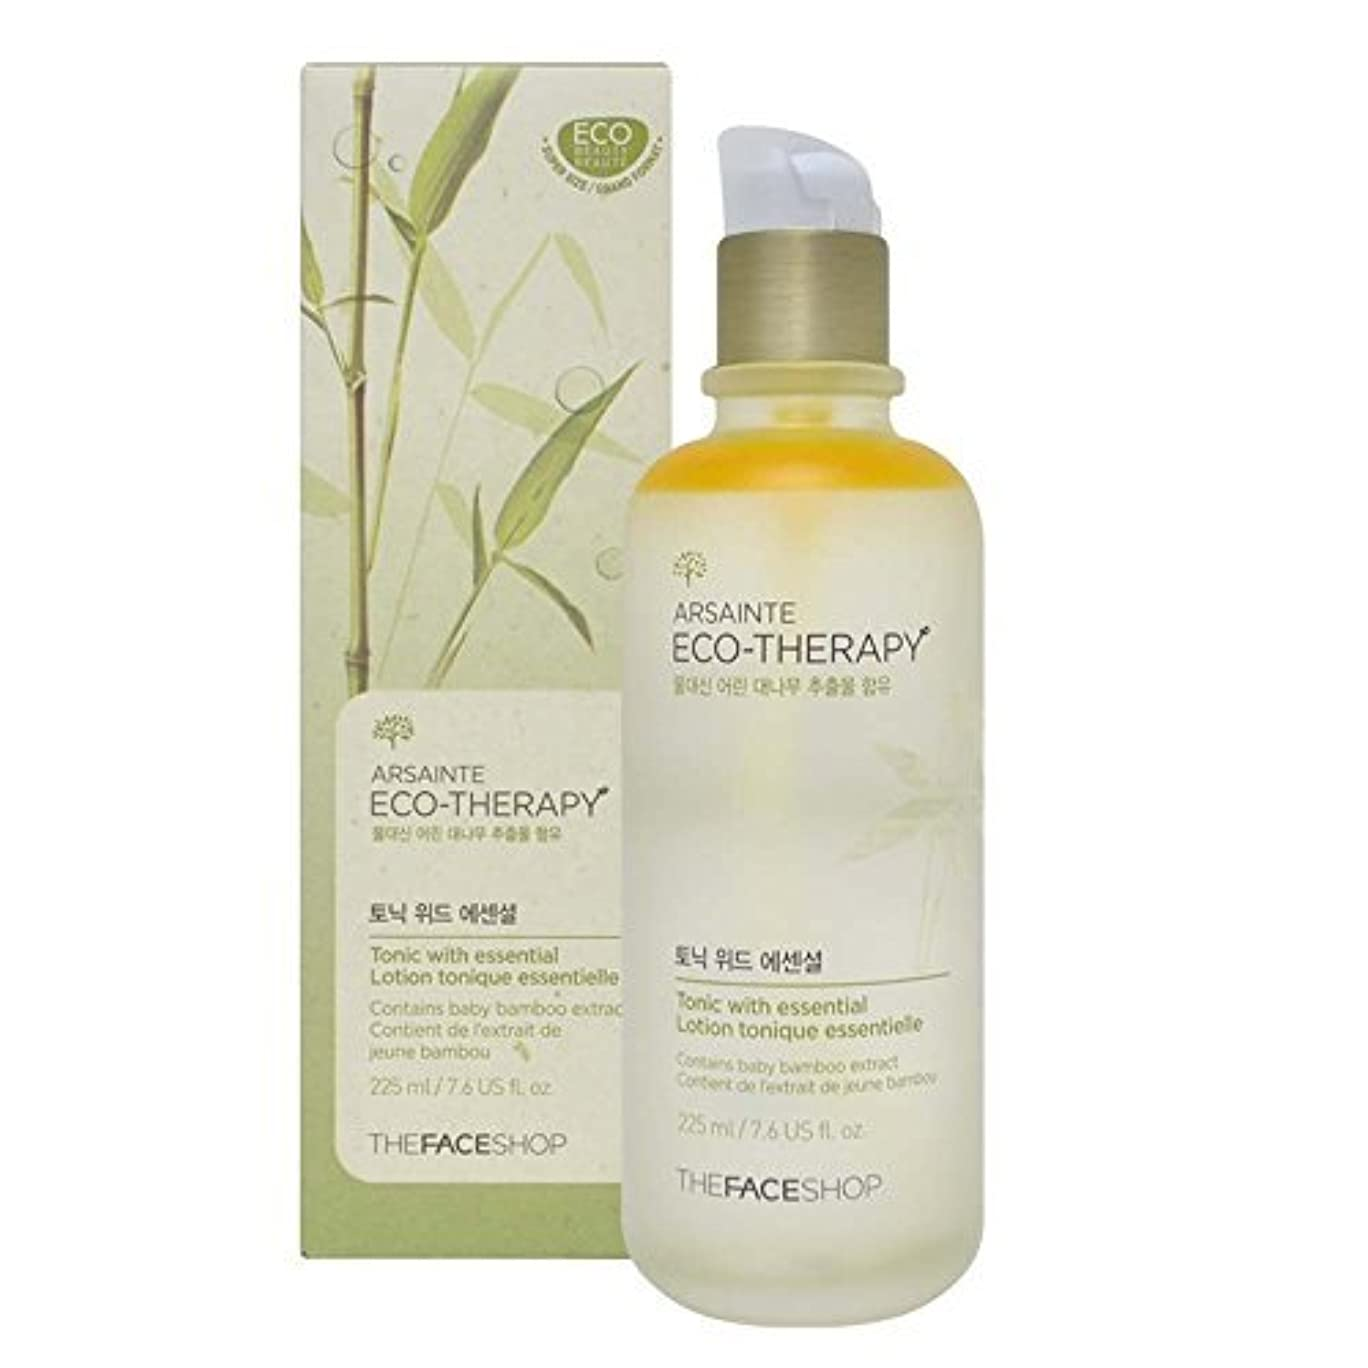 ペデスタル肉腫兄弟愛The Face shop Arsainte Ecotheraphy Tonic with essential Big Size 225ml [並行輸入品]